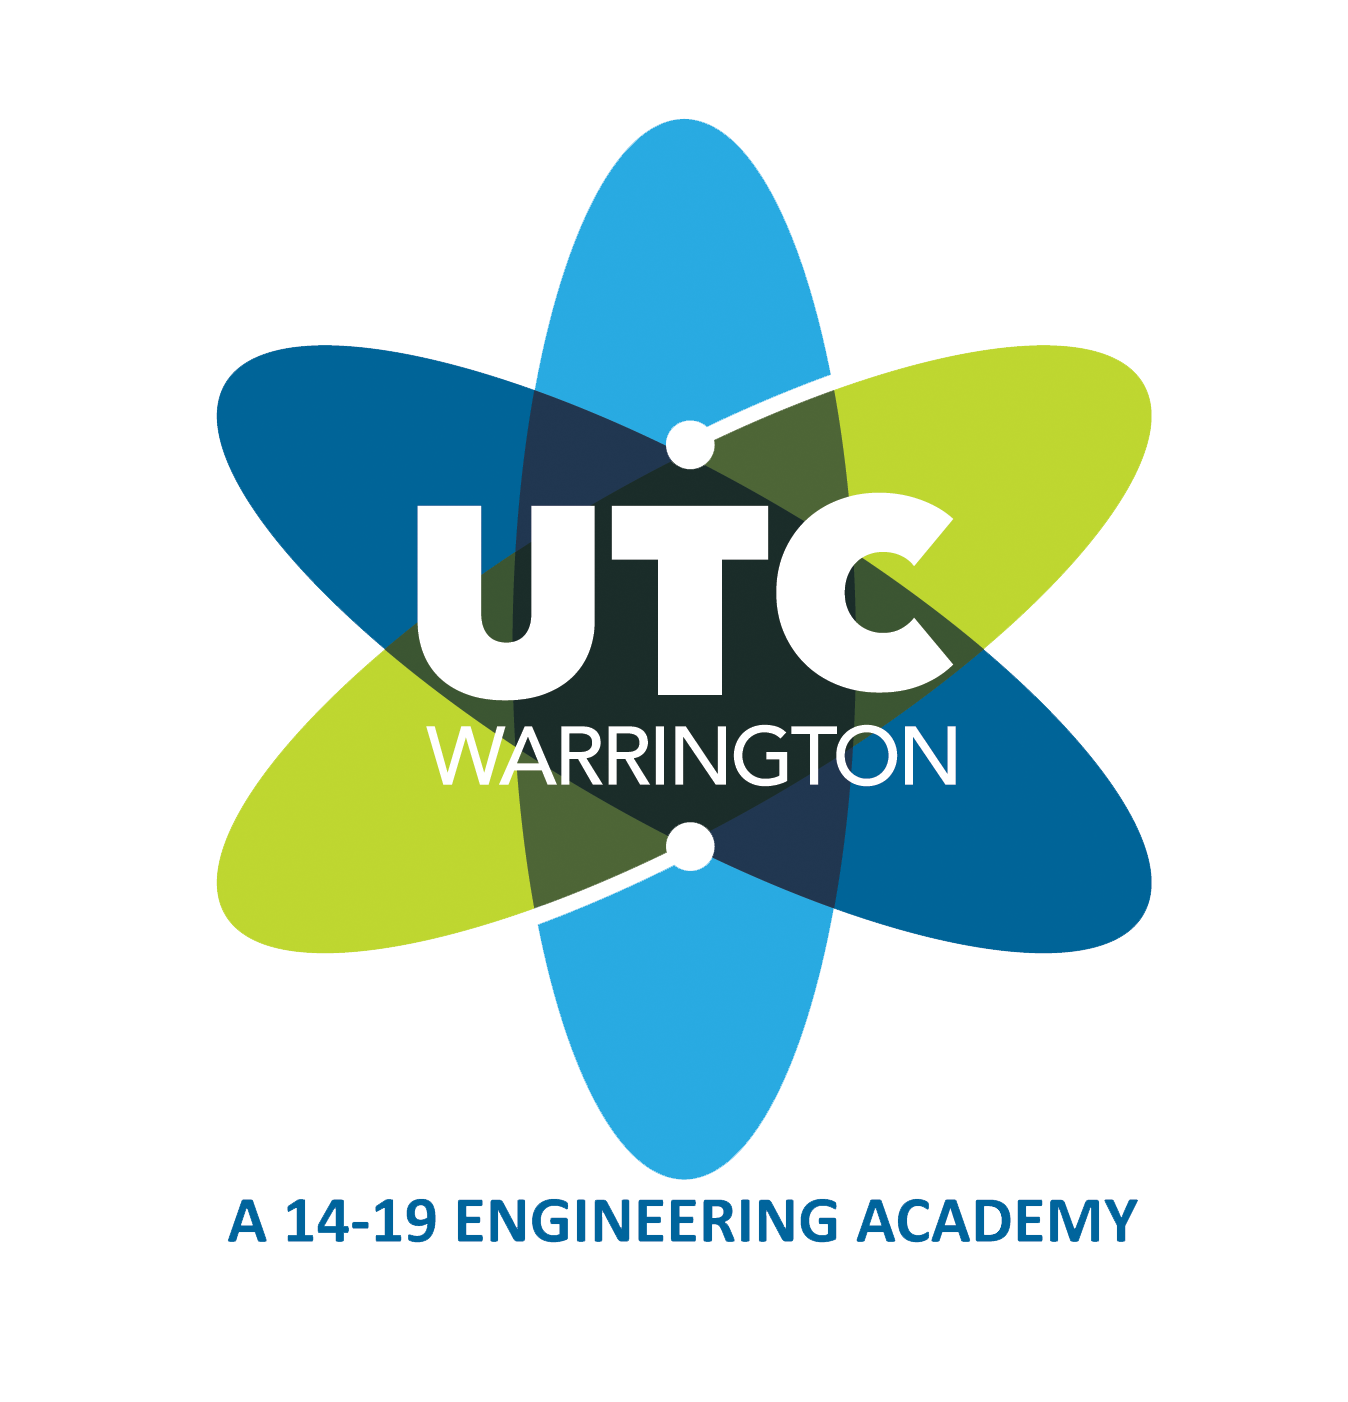 Warrington UTC